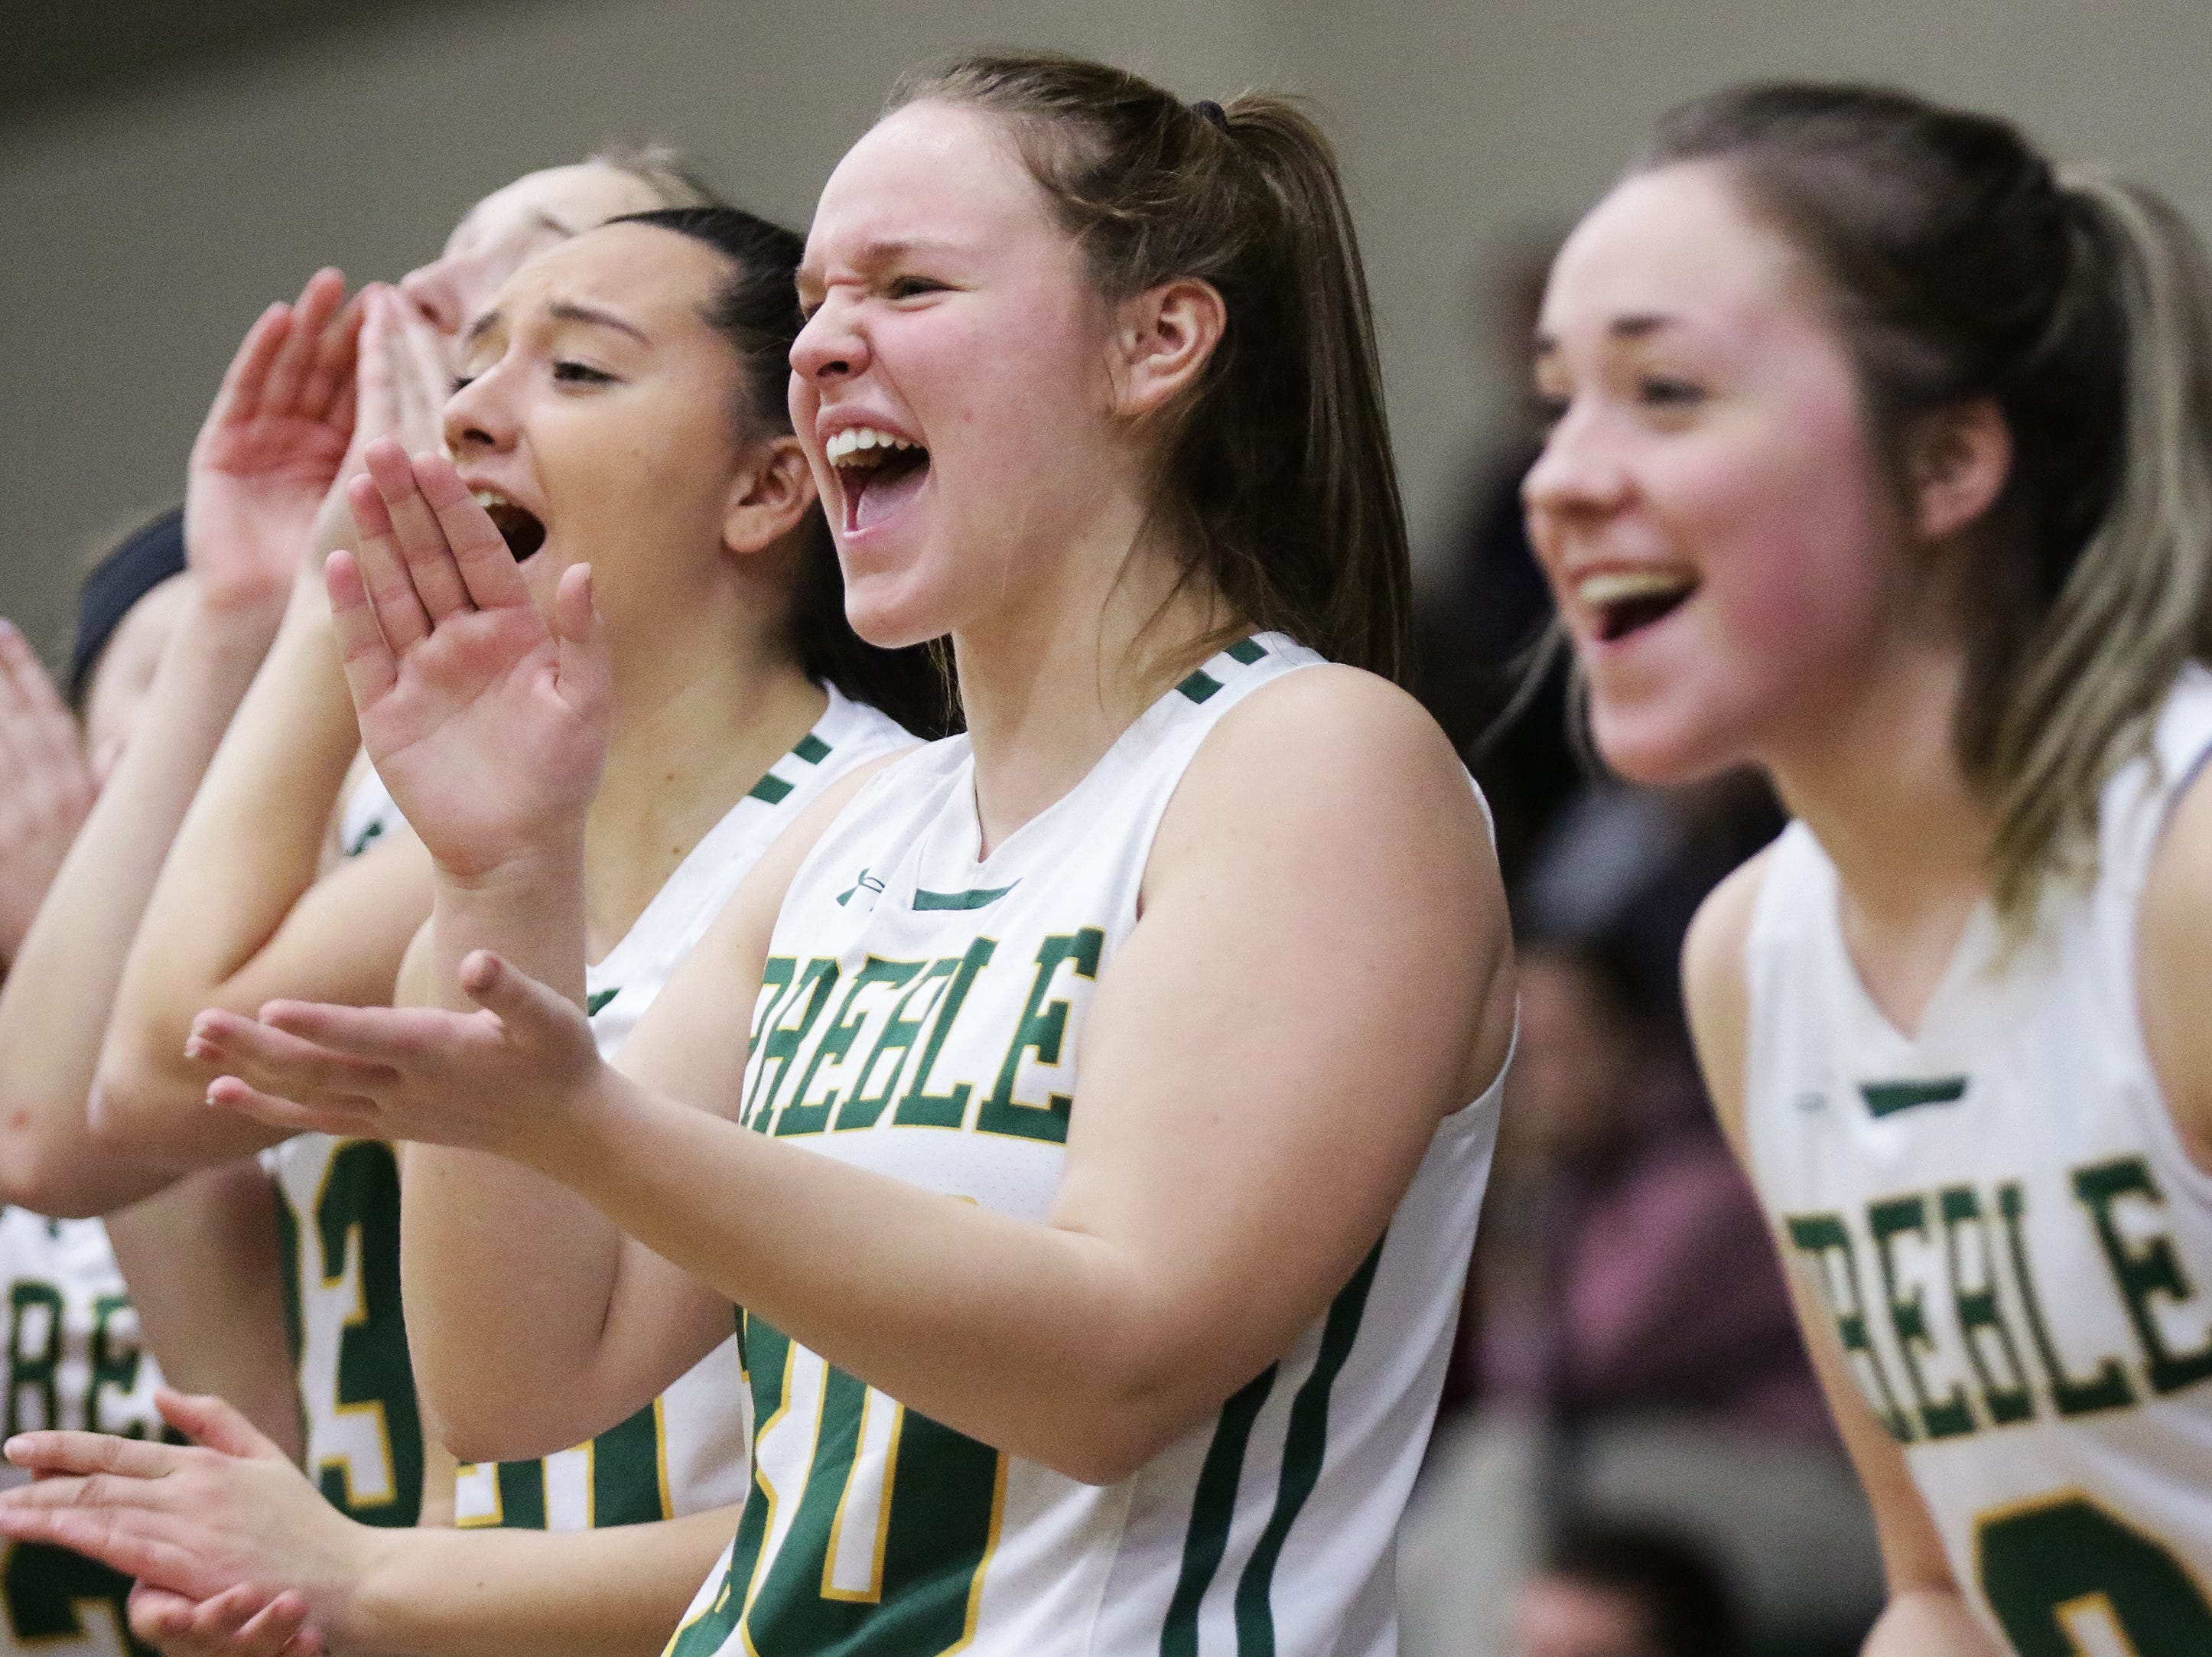 Green Bay Preble players celebrate from the bench during a girls basketball game against De Pere at Preble high school on Tuesday, January 8, 2019 in Green Bay, Wis.